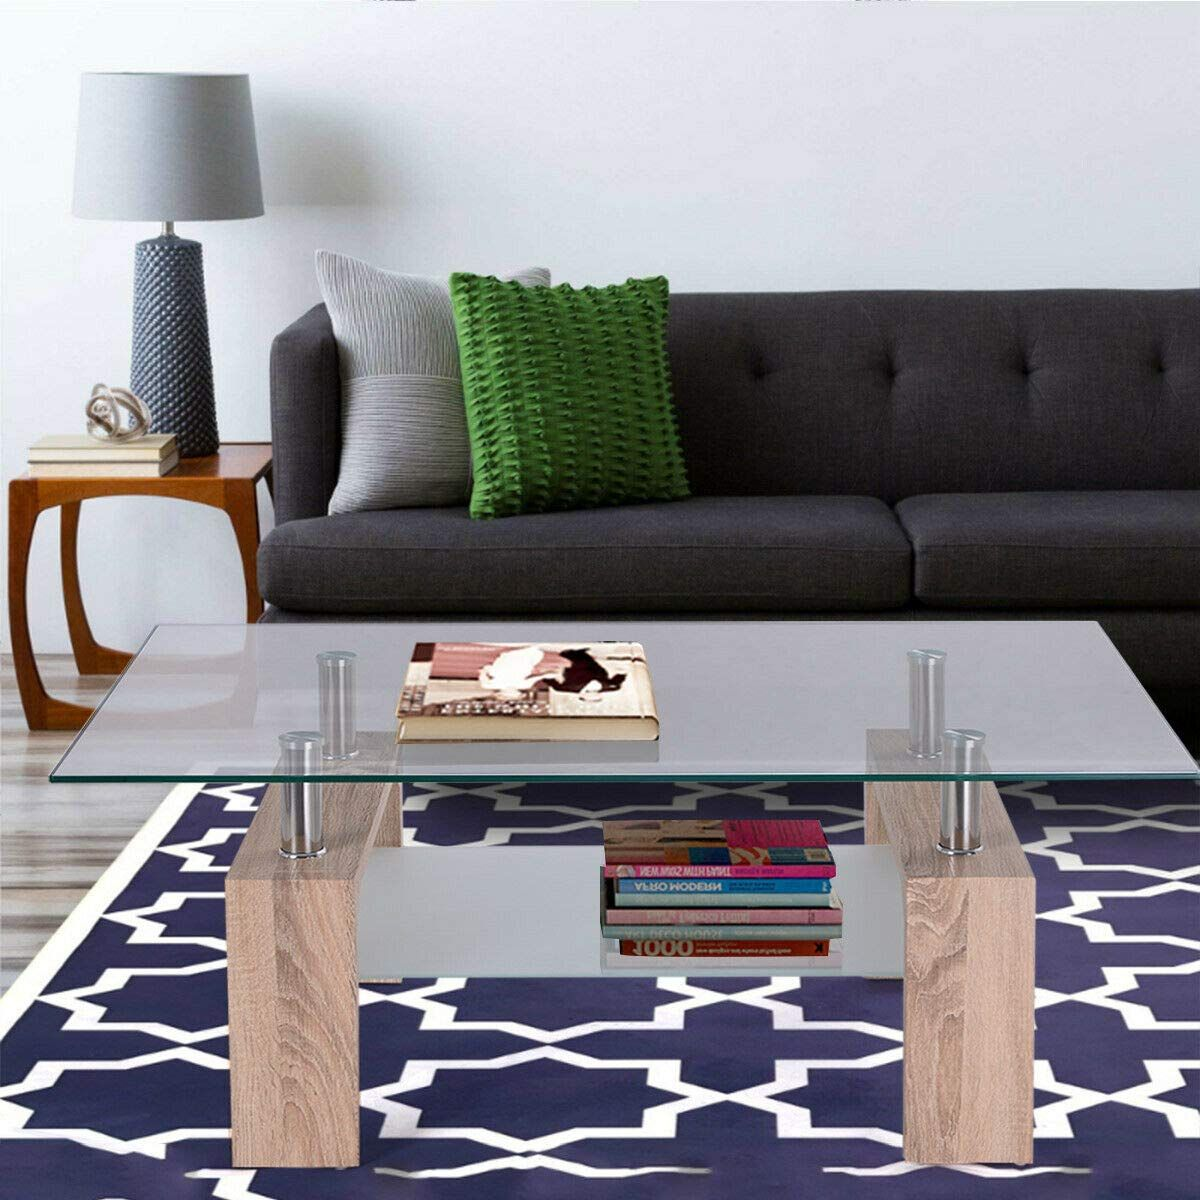 Tangkula Glass Coffee Table Modern Simple Style Rectangular Wood Legs End Side Table Living Room Home Fur Living Room Side Table Living Room Table Living Table [ 1200 x 1200 Pixel ]